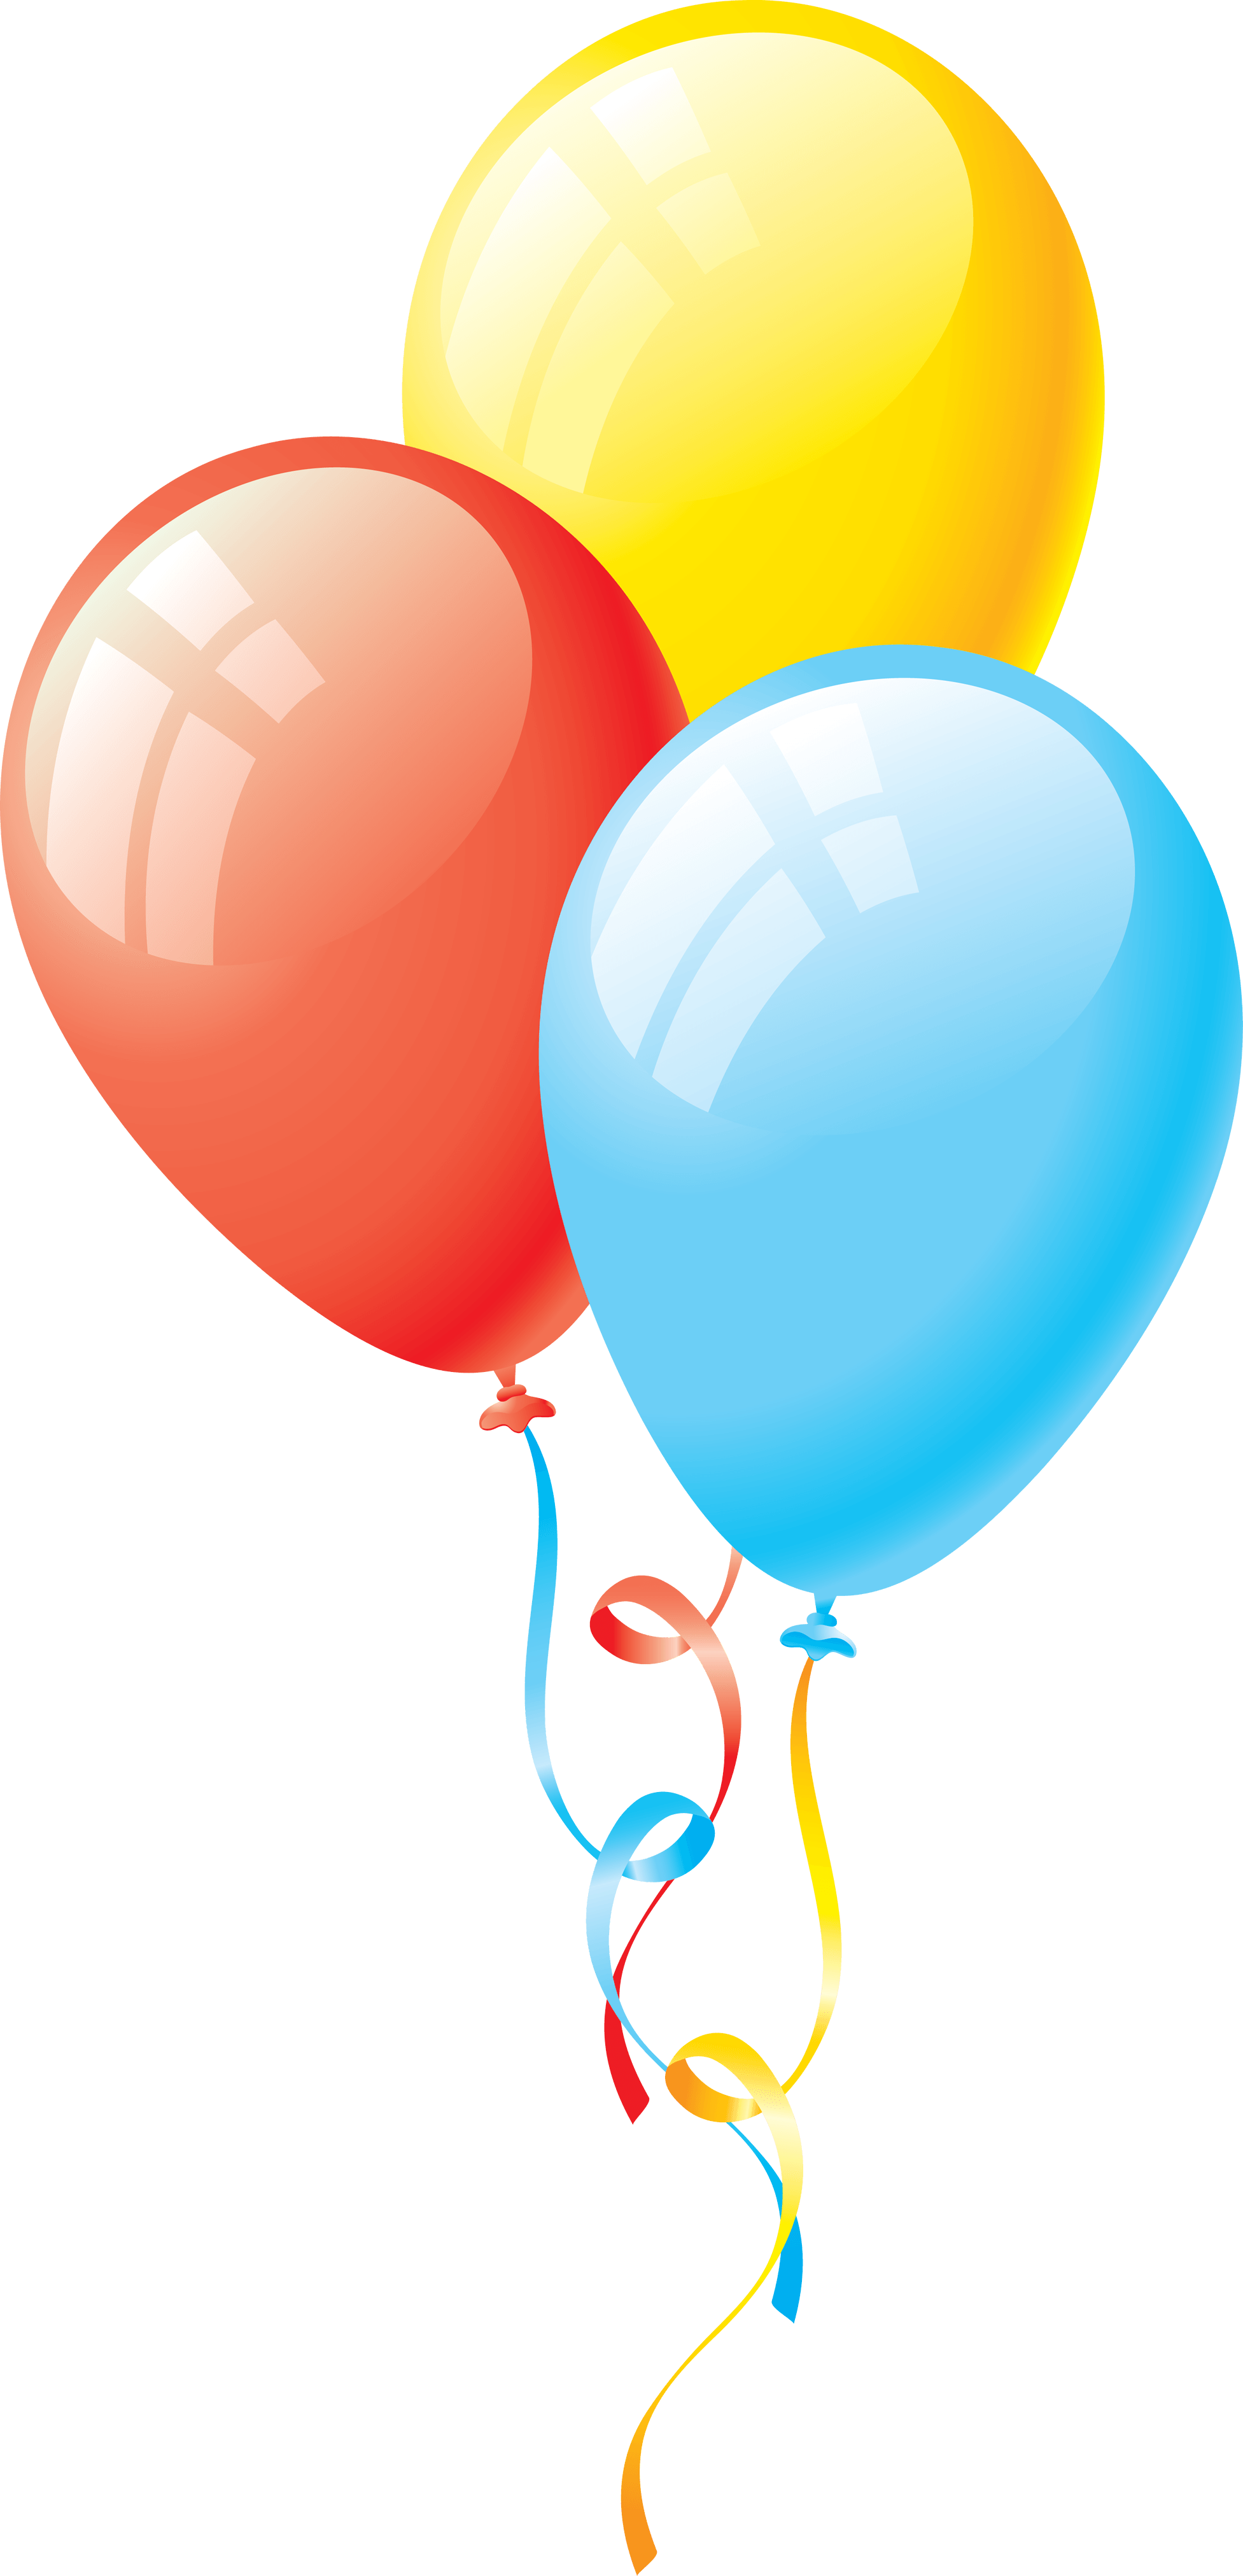 Colorful Balloon Png Image Download Balloons PNG Image